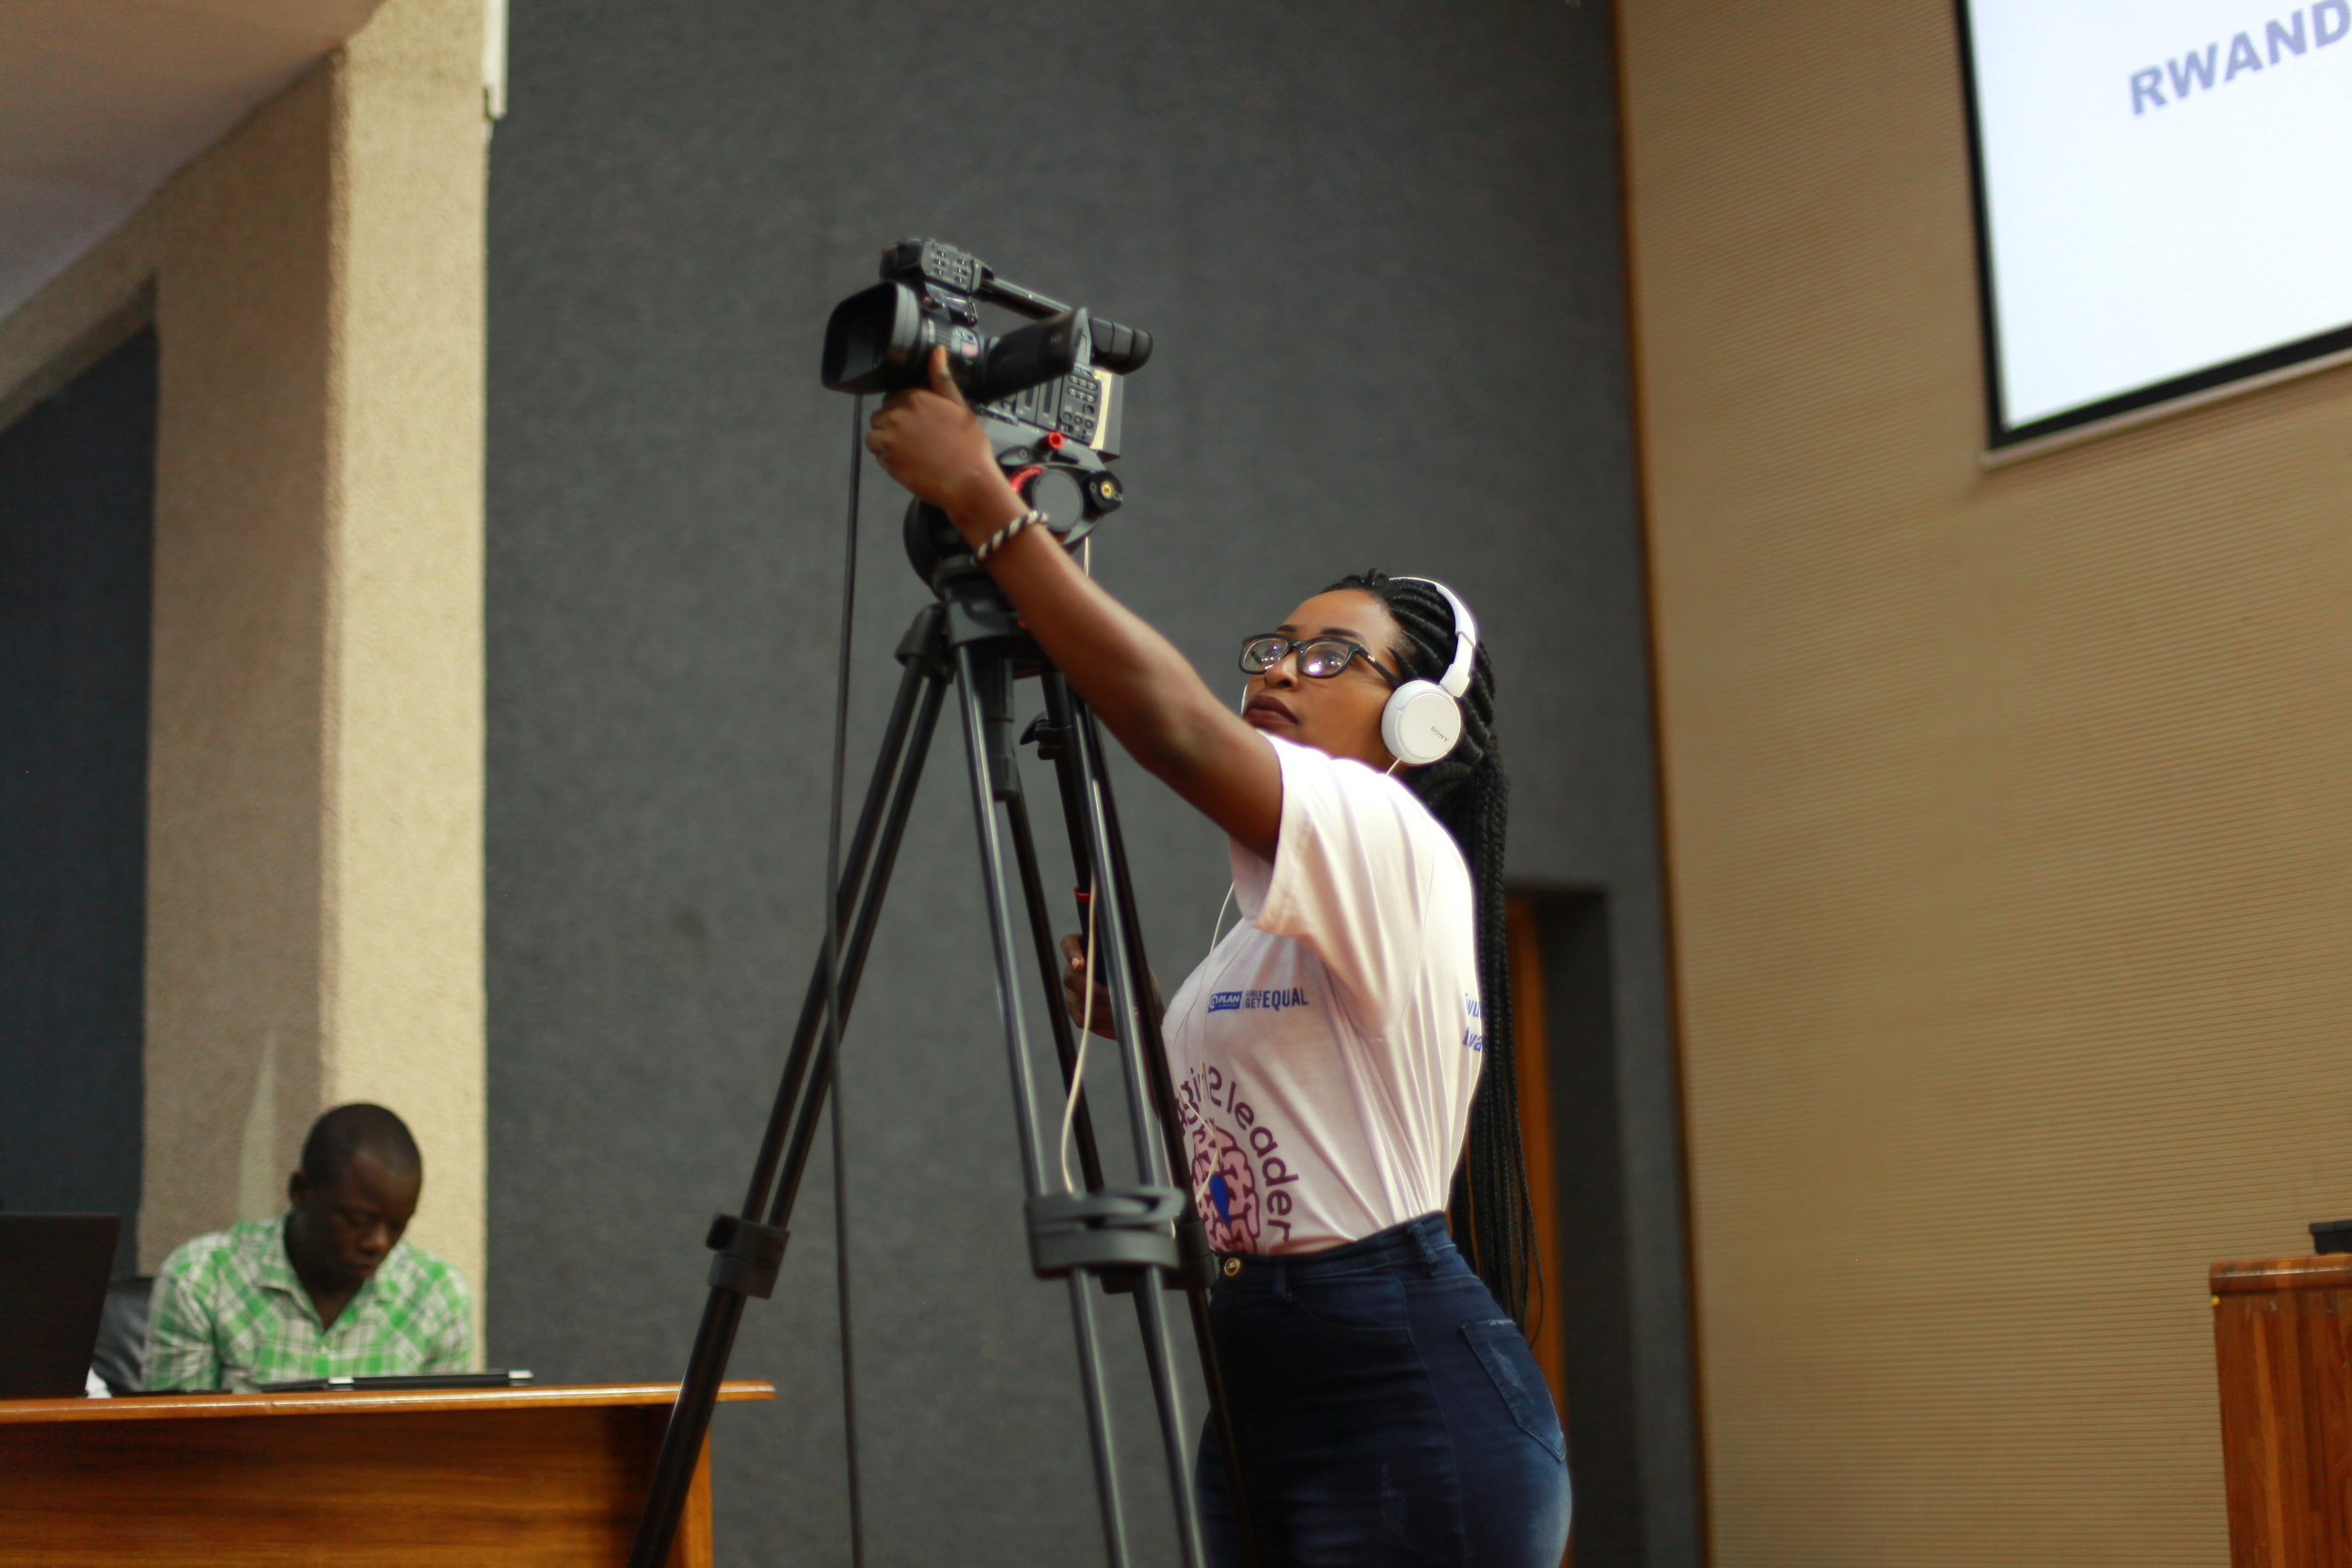 ADMA student Adeline, getting the high angle needed from her XF105 video camcorder.